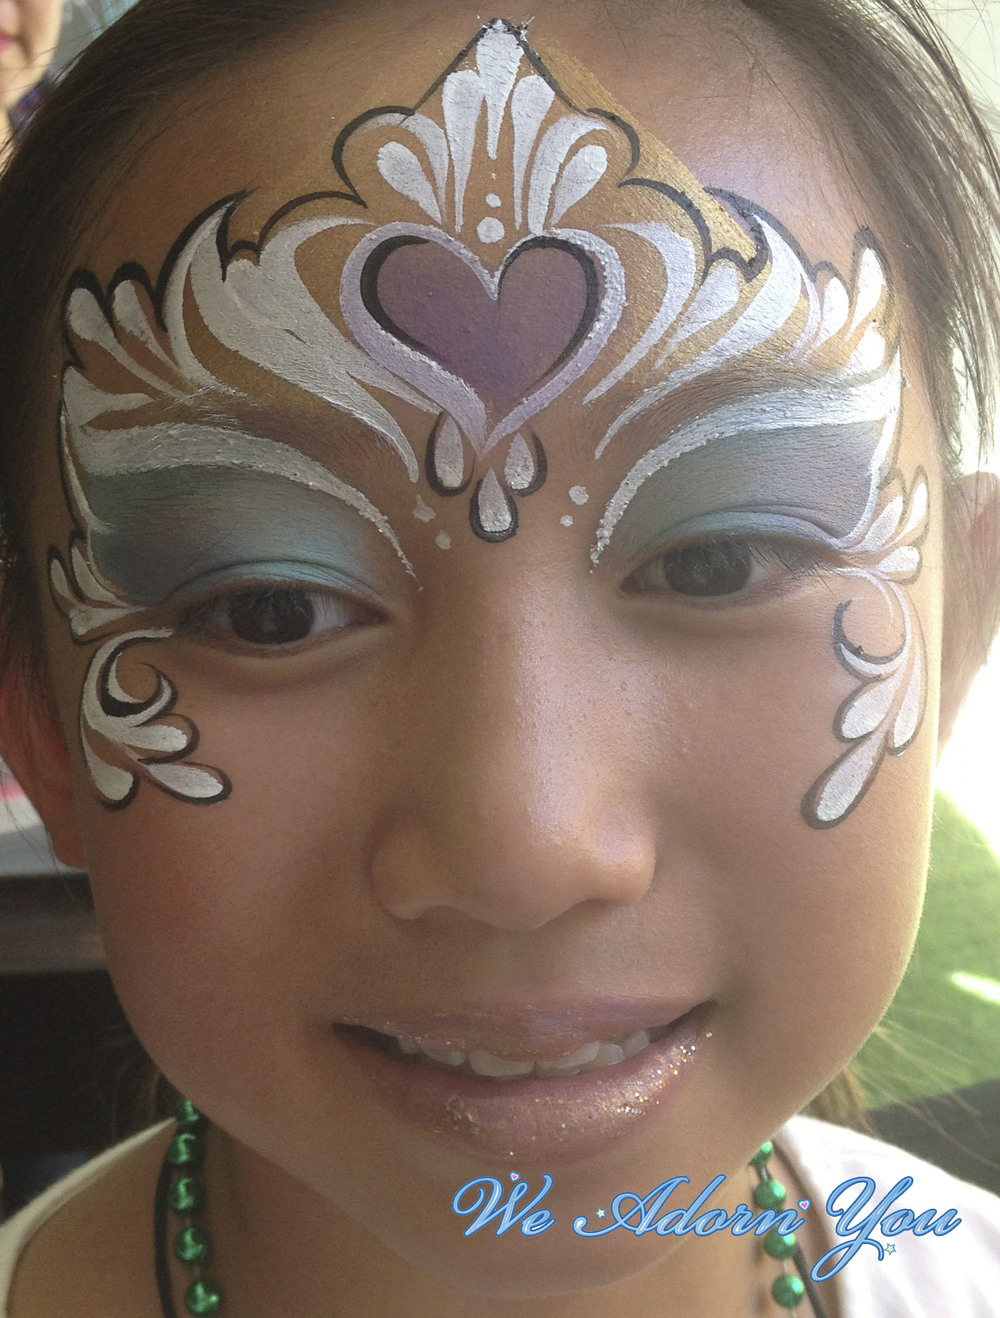 Face Painting Princess - We Adorn You.jpg